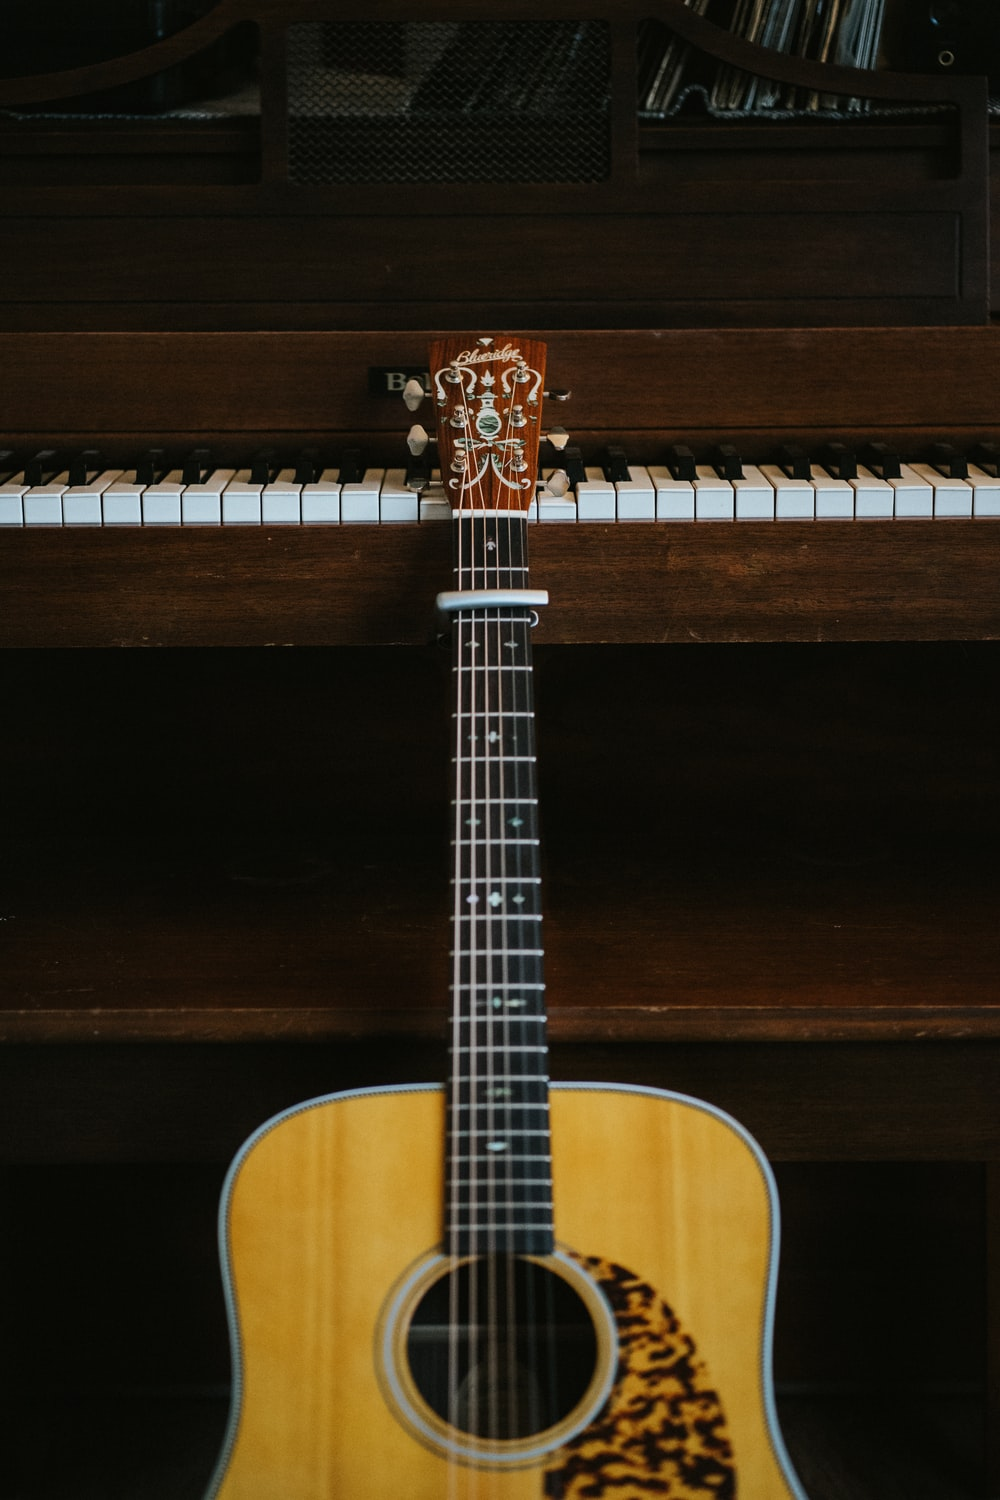 brown acoustic guitar leaning on brown piano